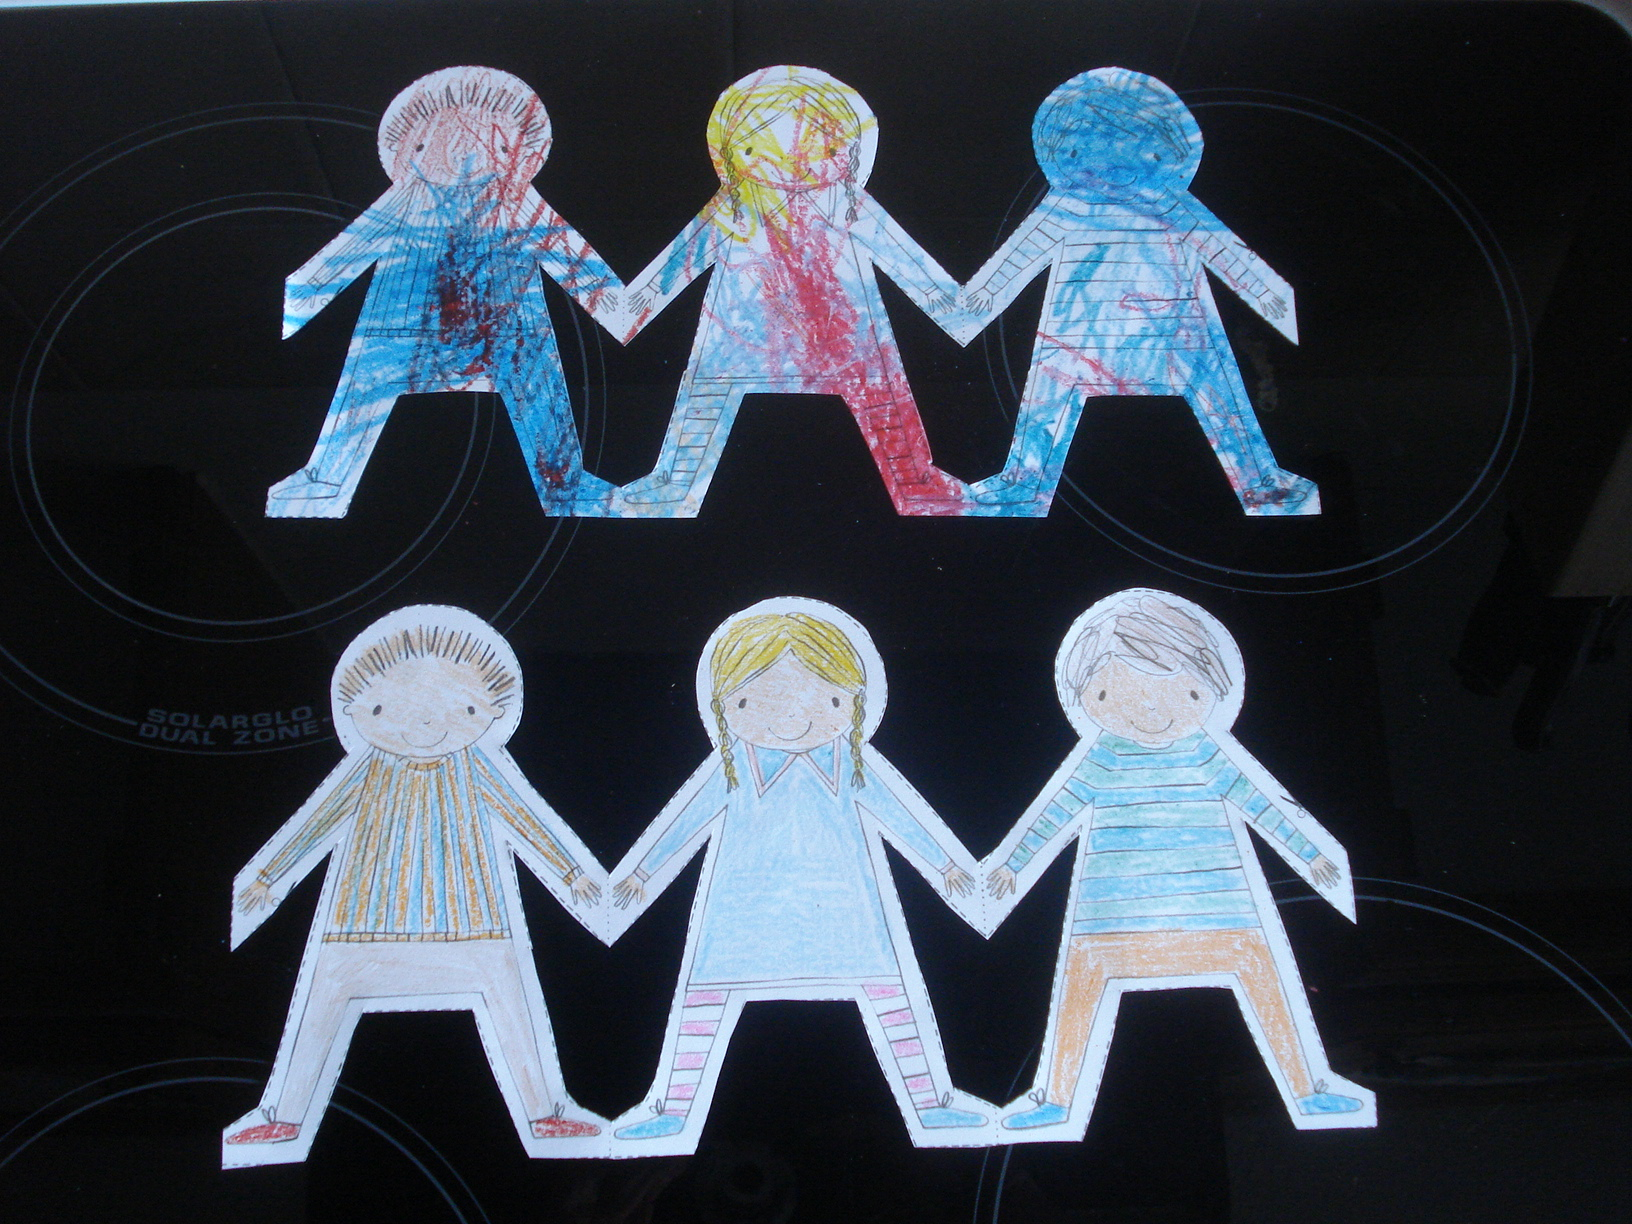 Our paper dolls